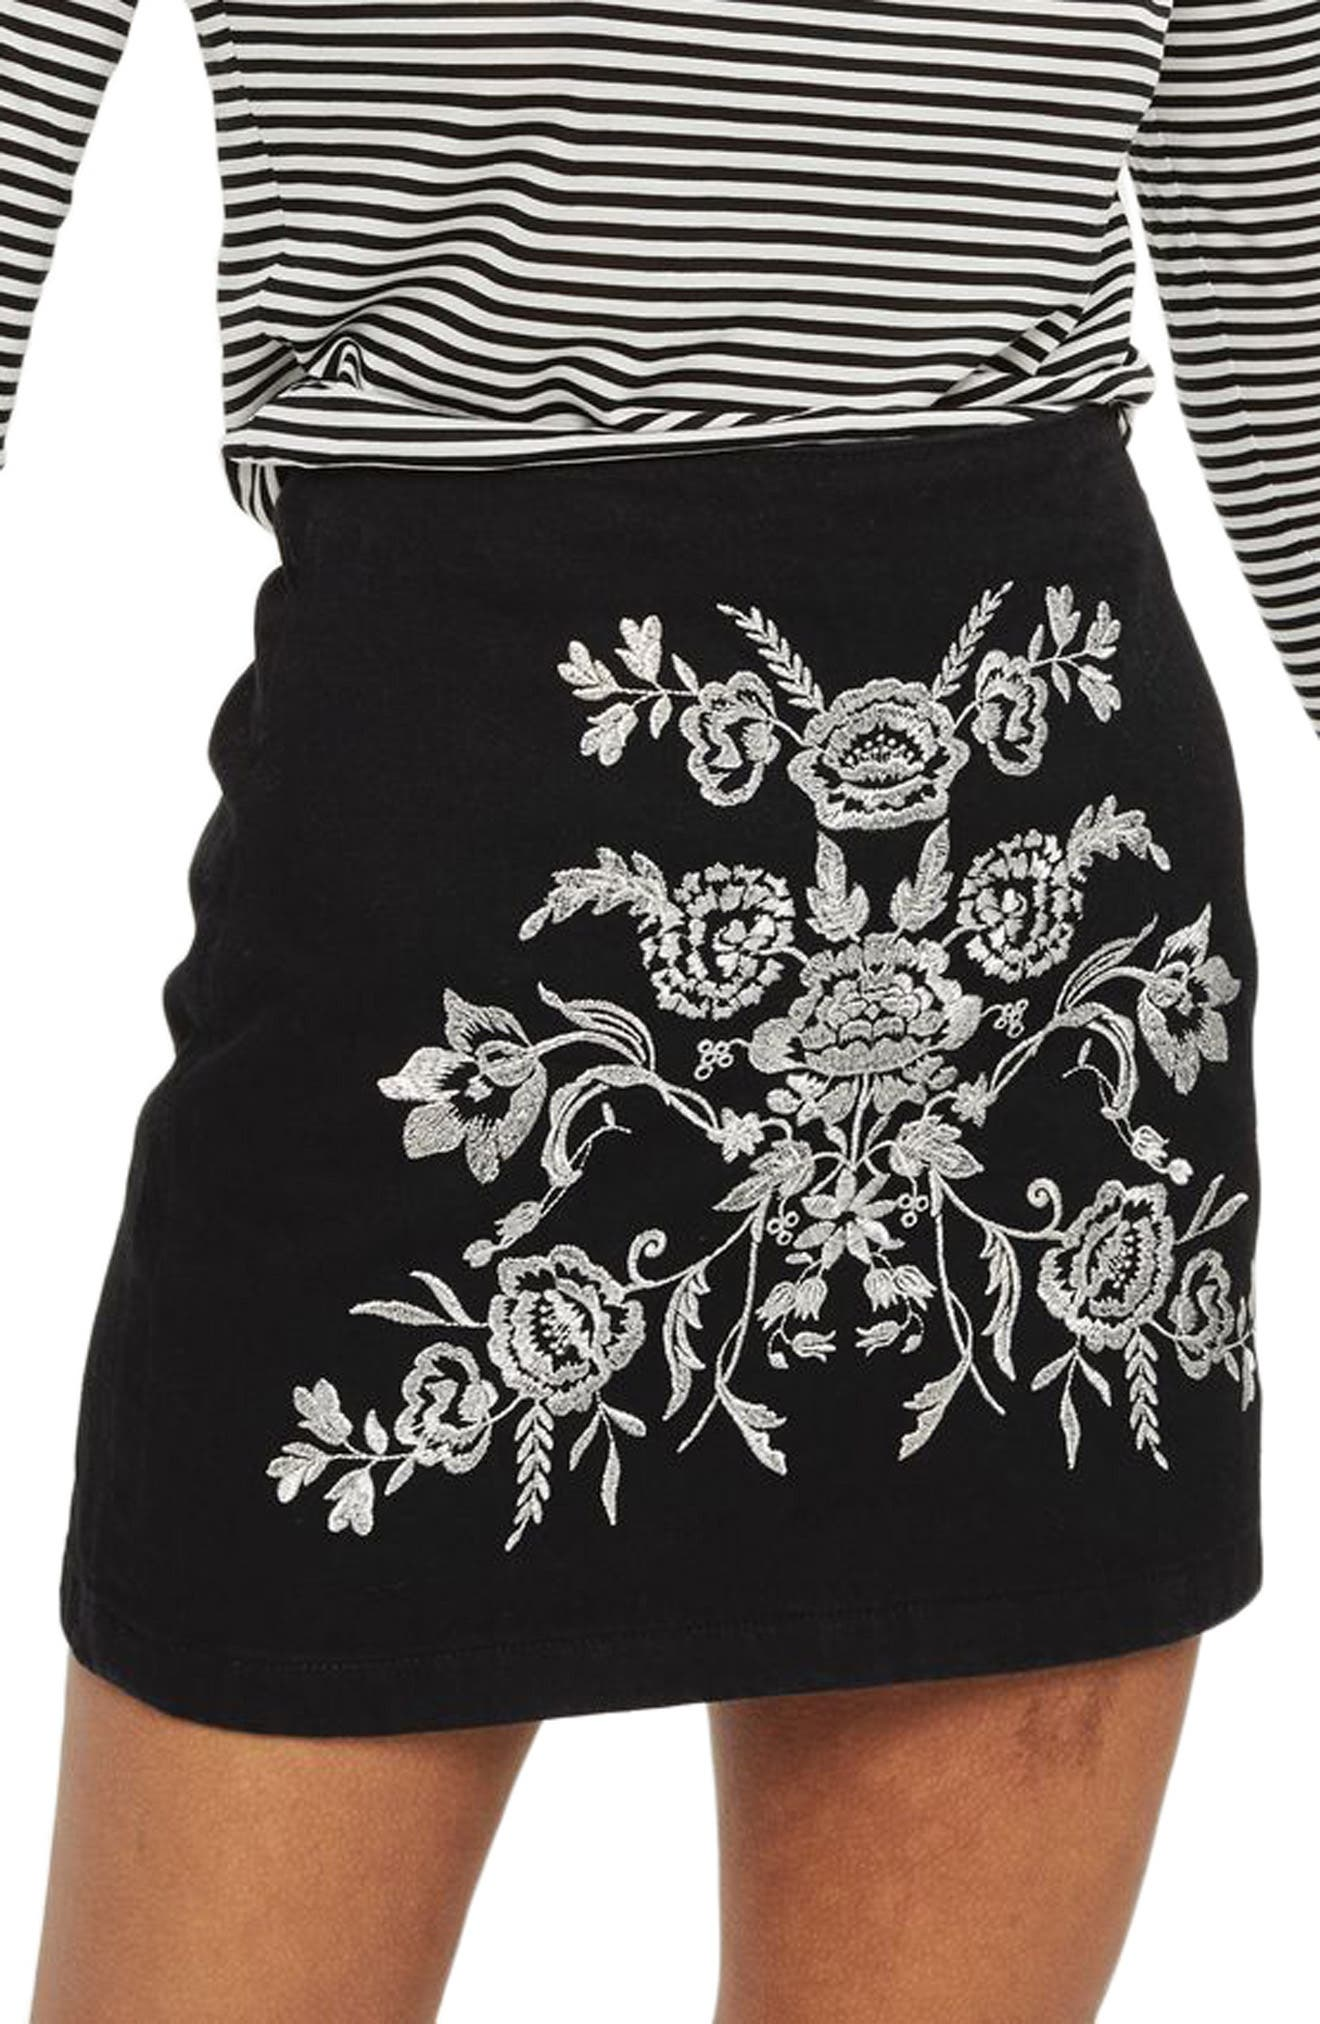 Floral Embroidered A-Line Skirt,                         Main,                         color, 001